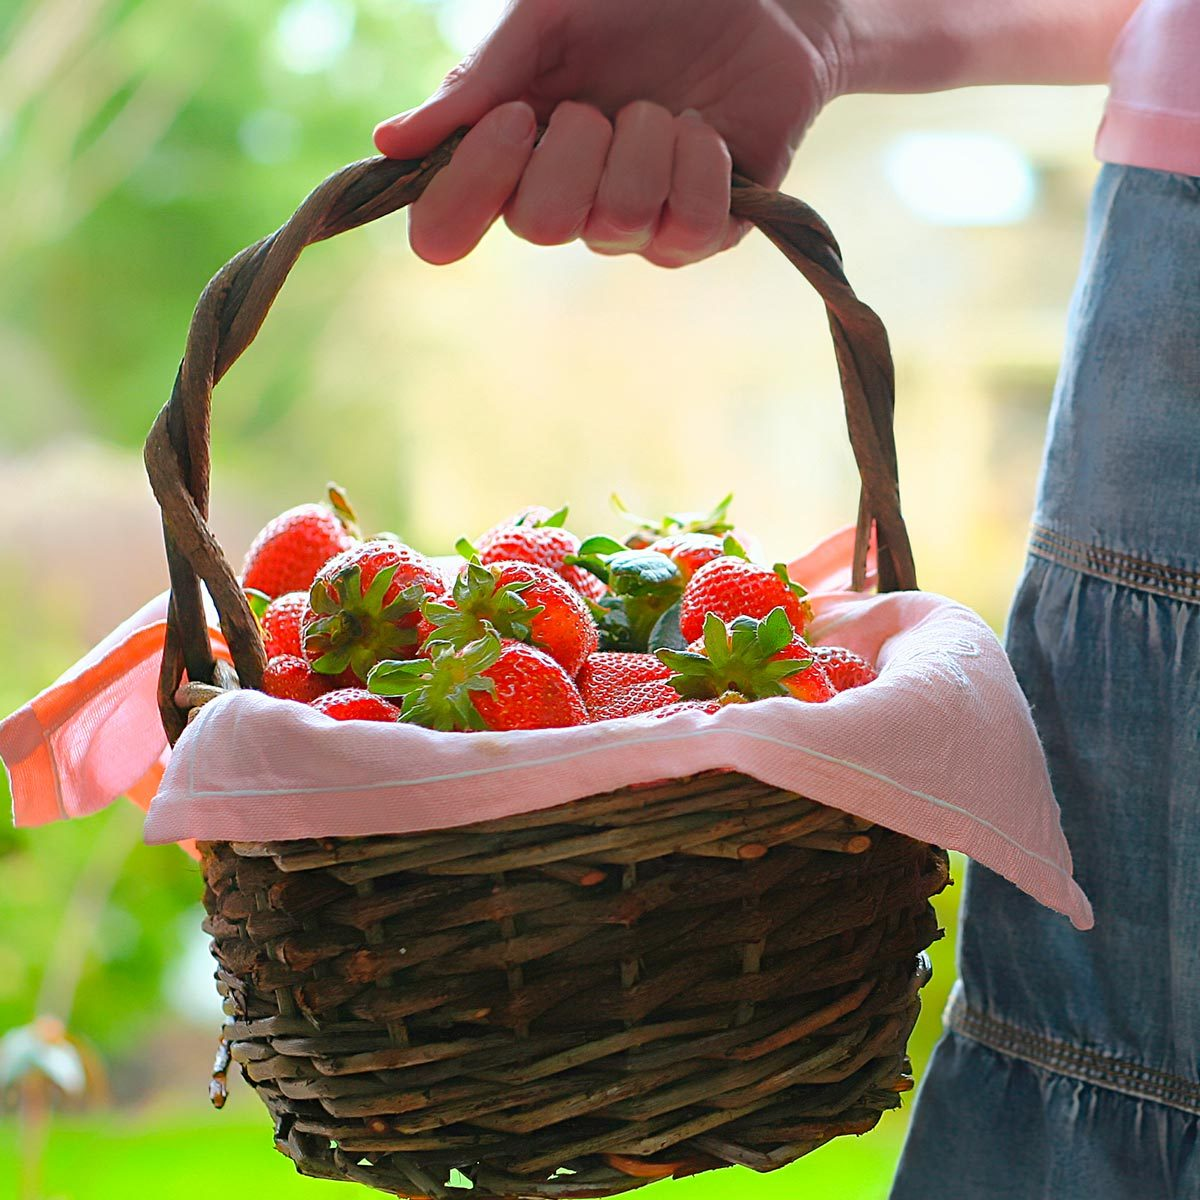 woman in a denim skirt carries a wooden basket full of strawberries